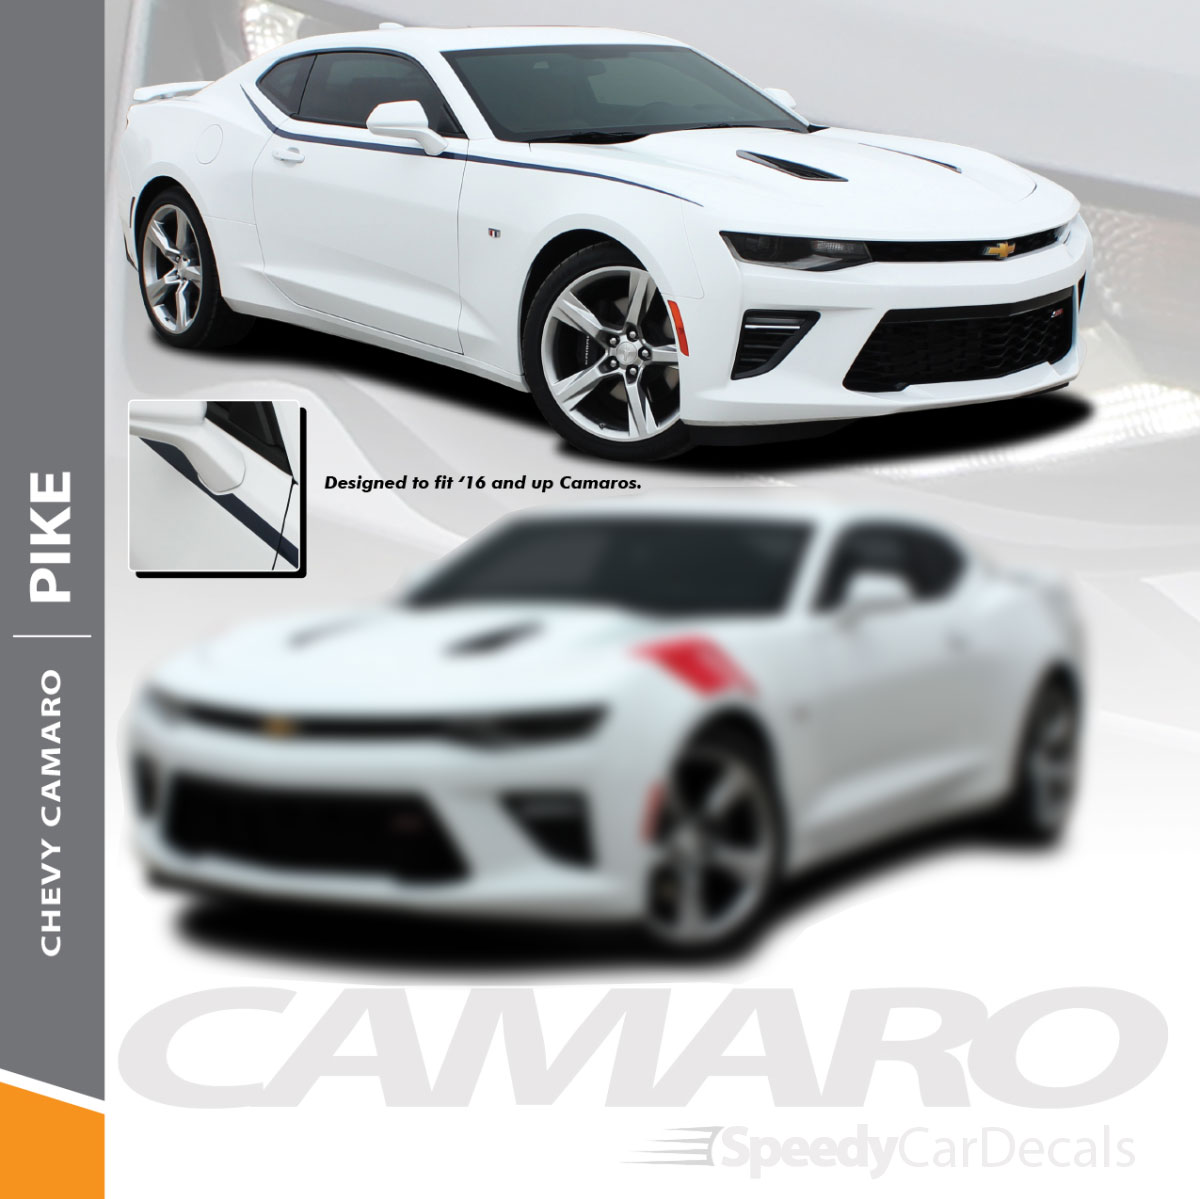 Camaro decals stickers pike side decals fender stripe graphics 2016 2018 wet and dry install